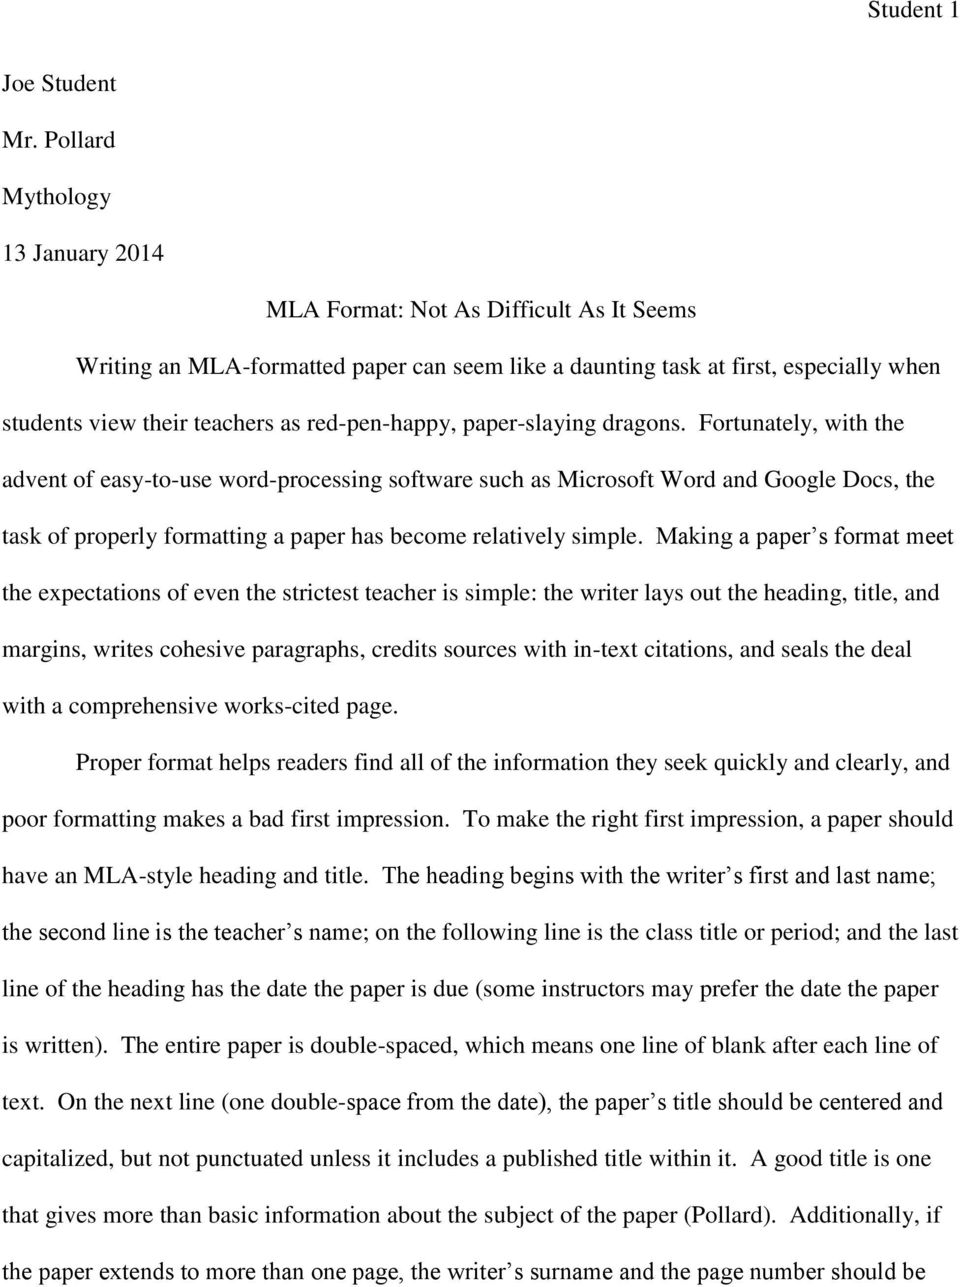 Mla Format Narrative Essay